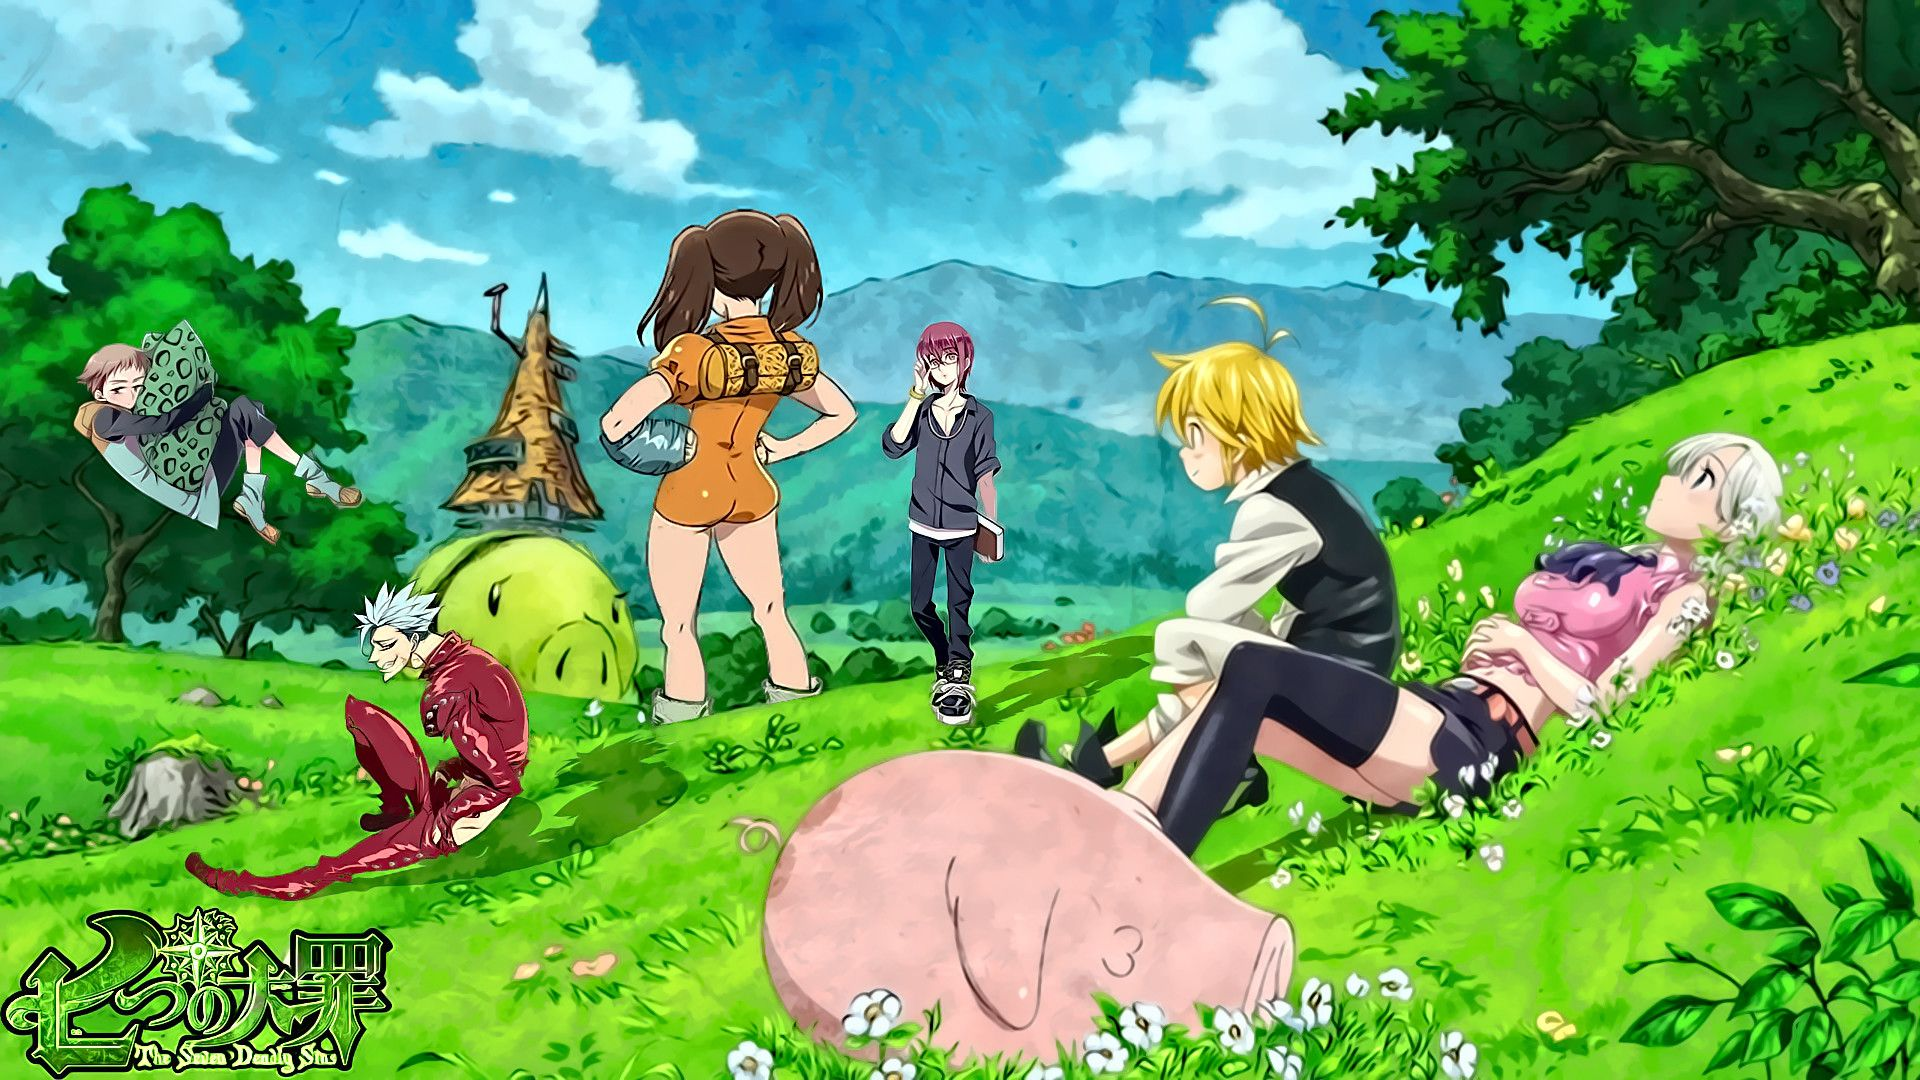 Seven Deadly Sins Anime Image By Clayton Milam On Seven Deadly